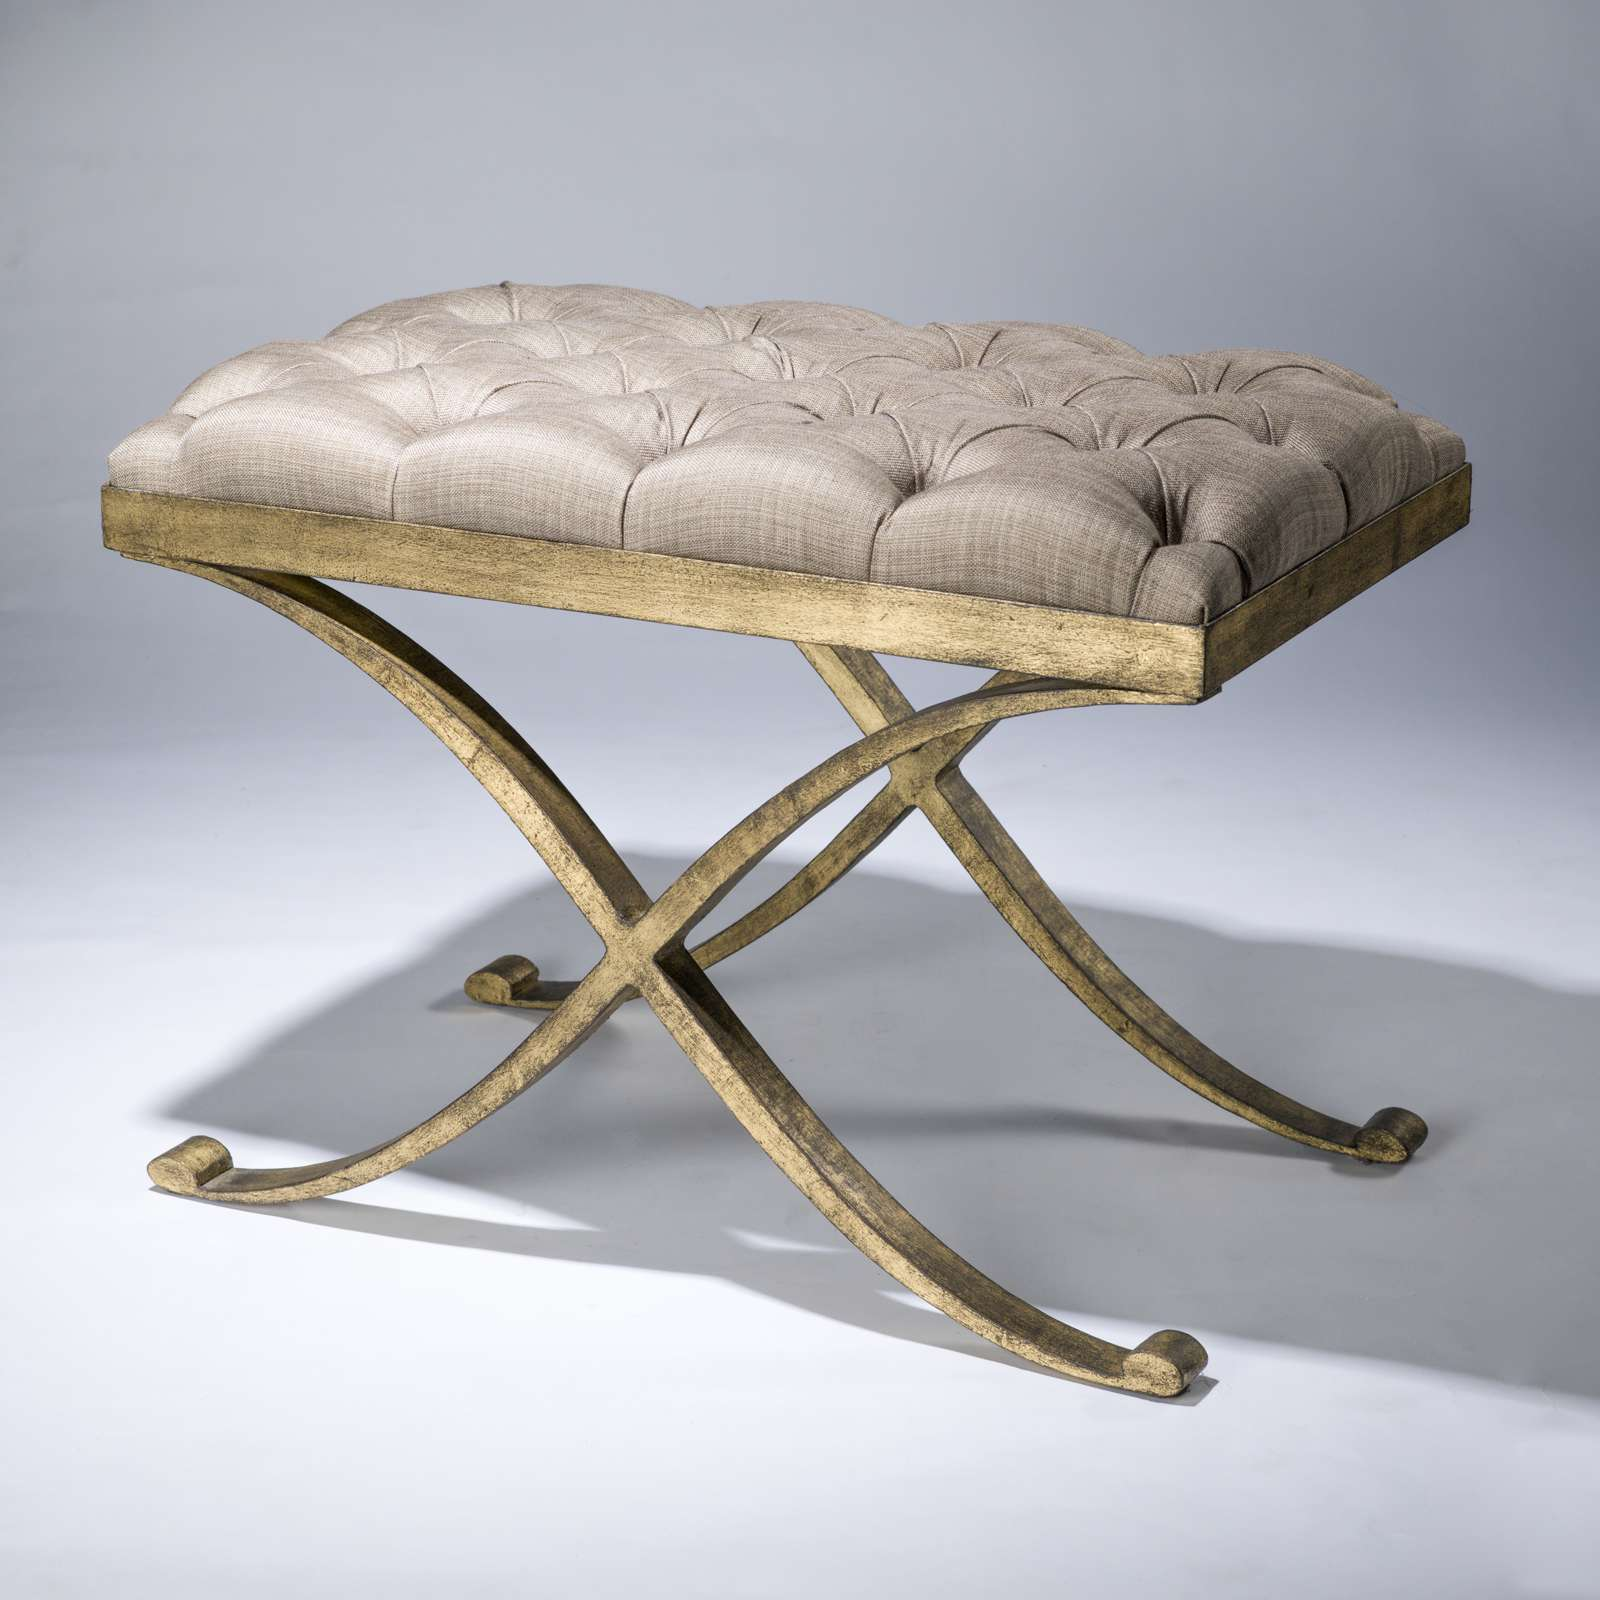 Wrought iron criss cross stool in distressed gold leaf finish (T3671 ...